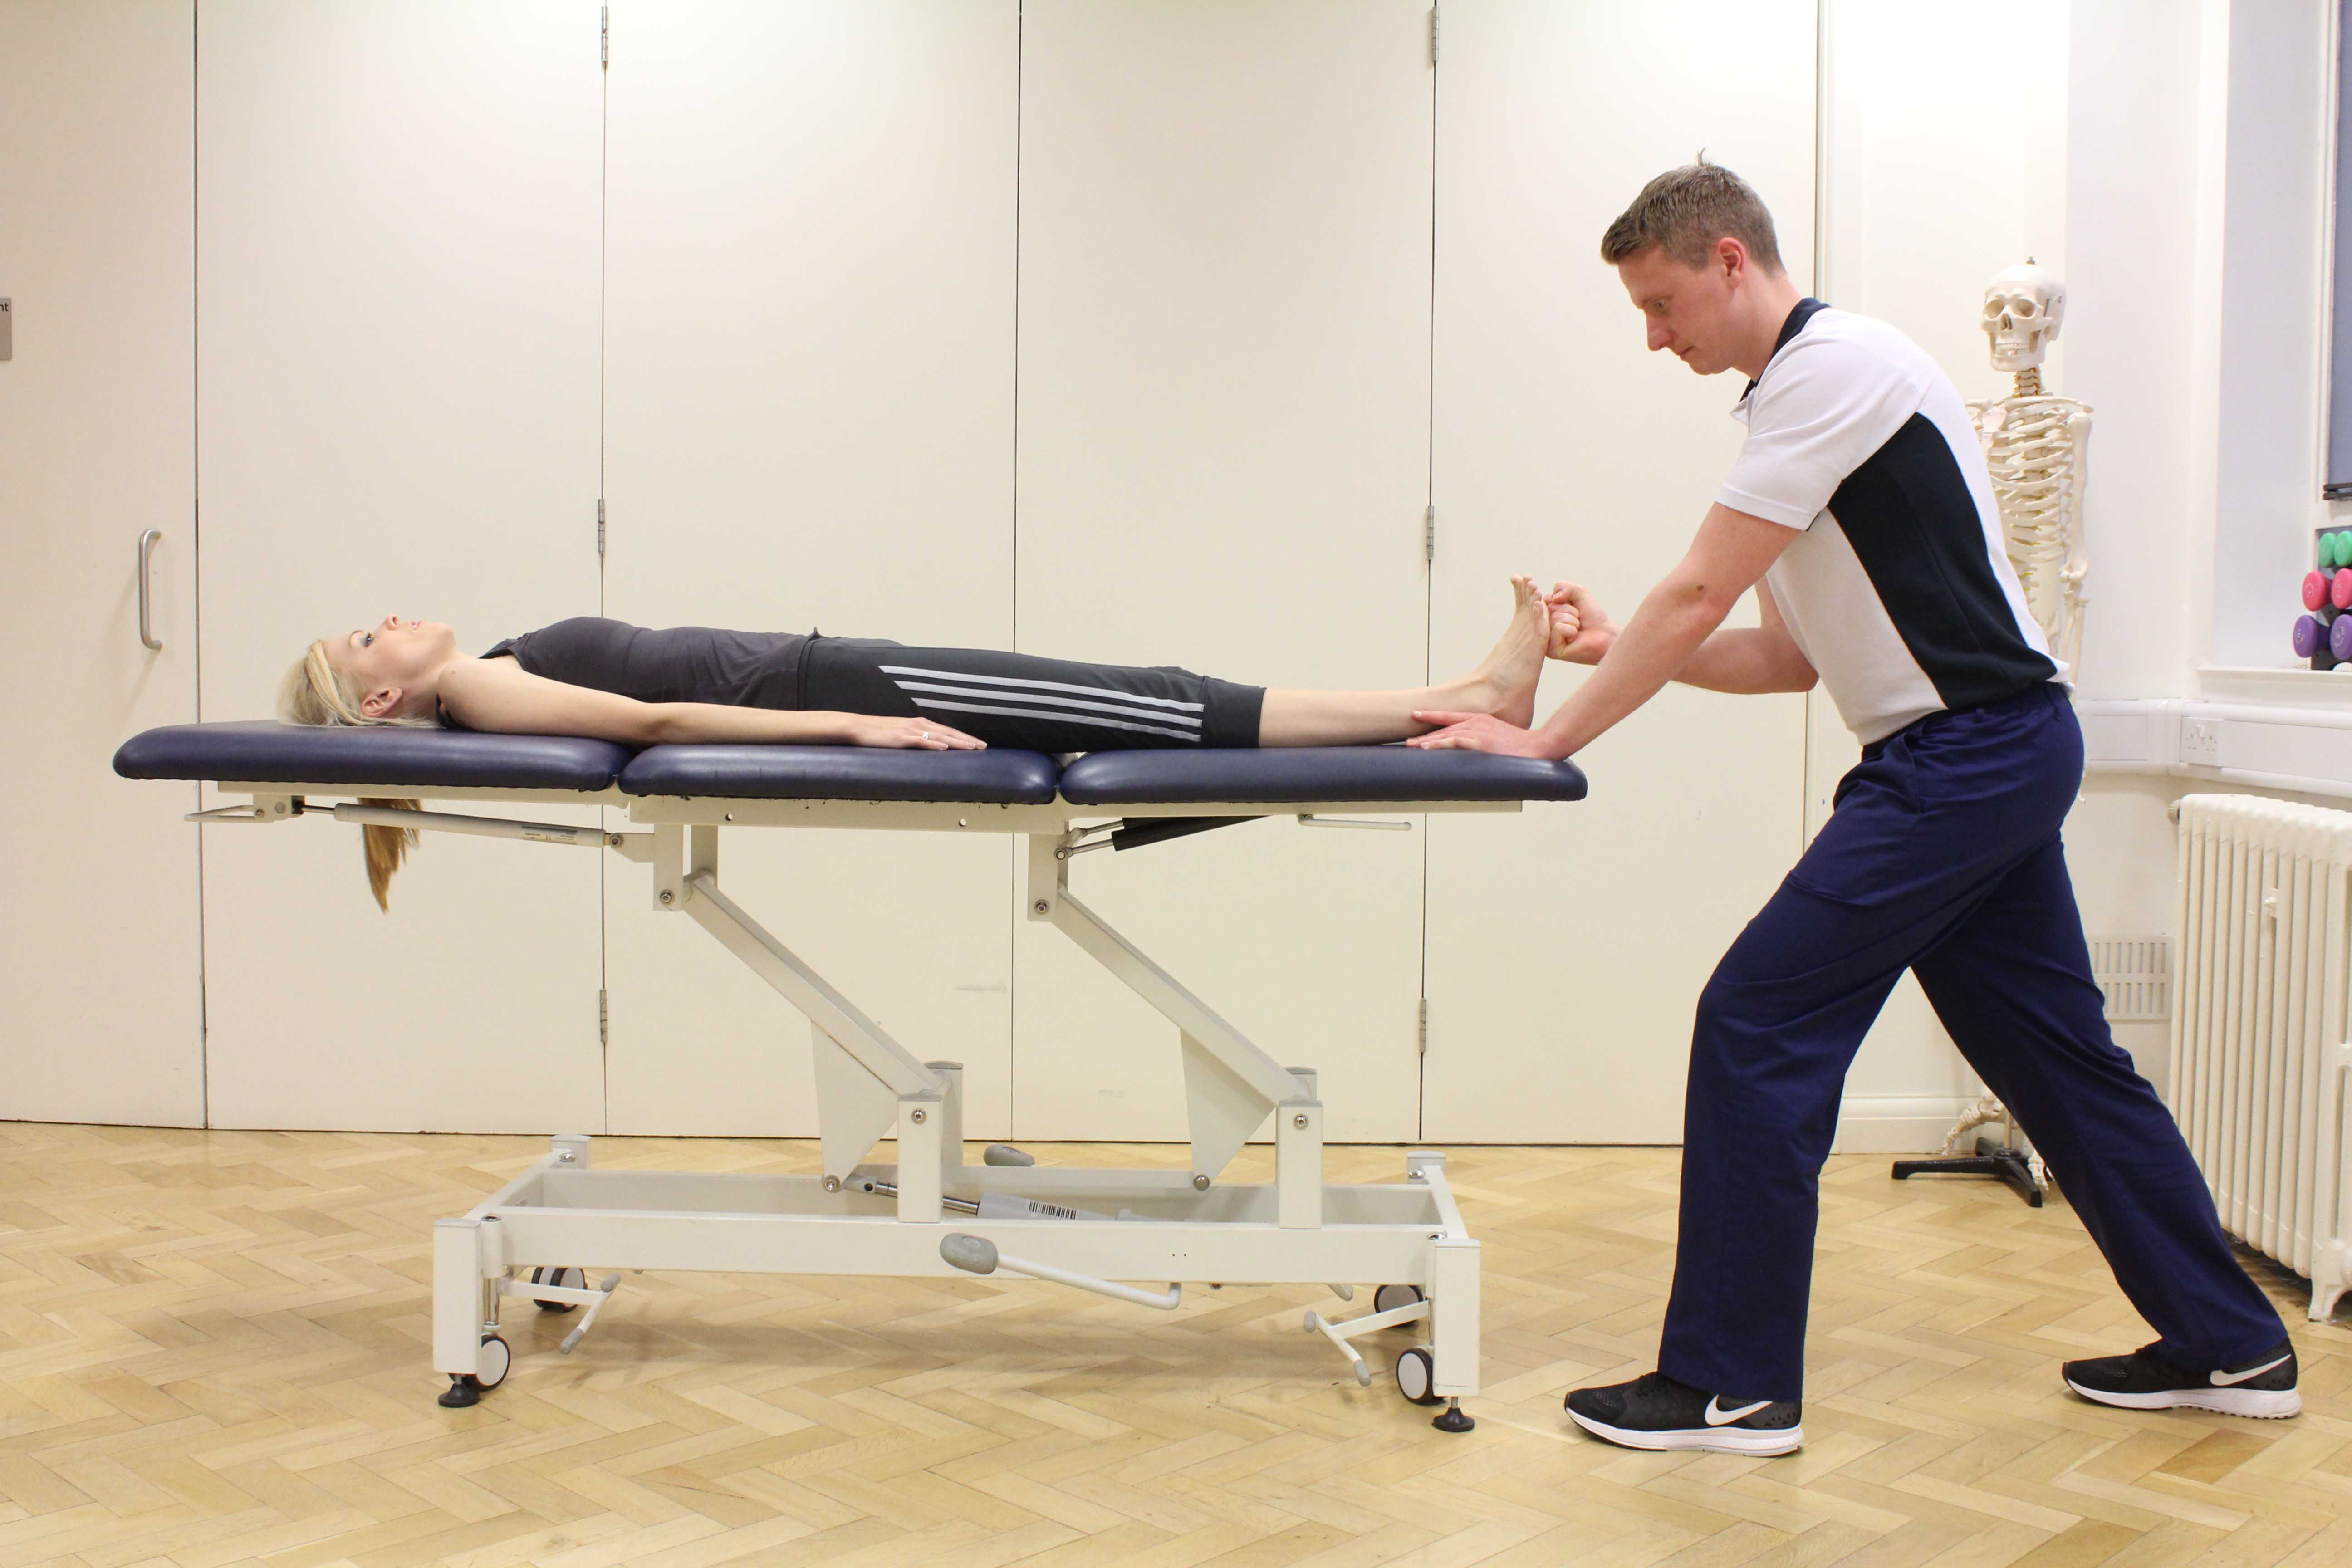 Foot and ankle assessment conducted by specialist MSK physiotherapist